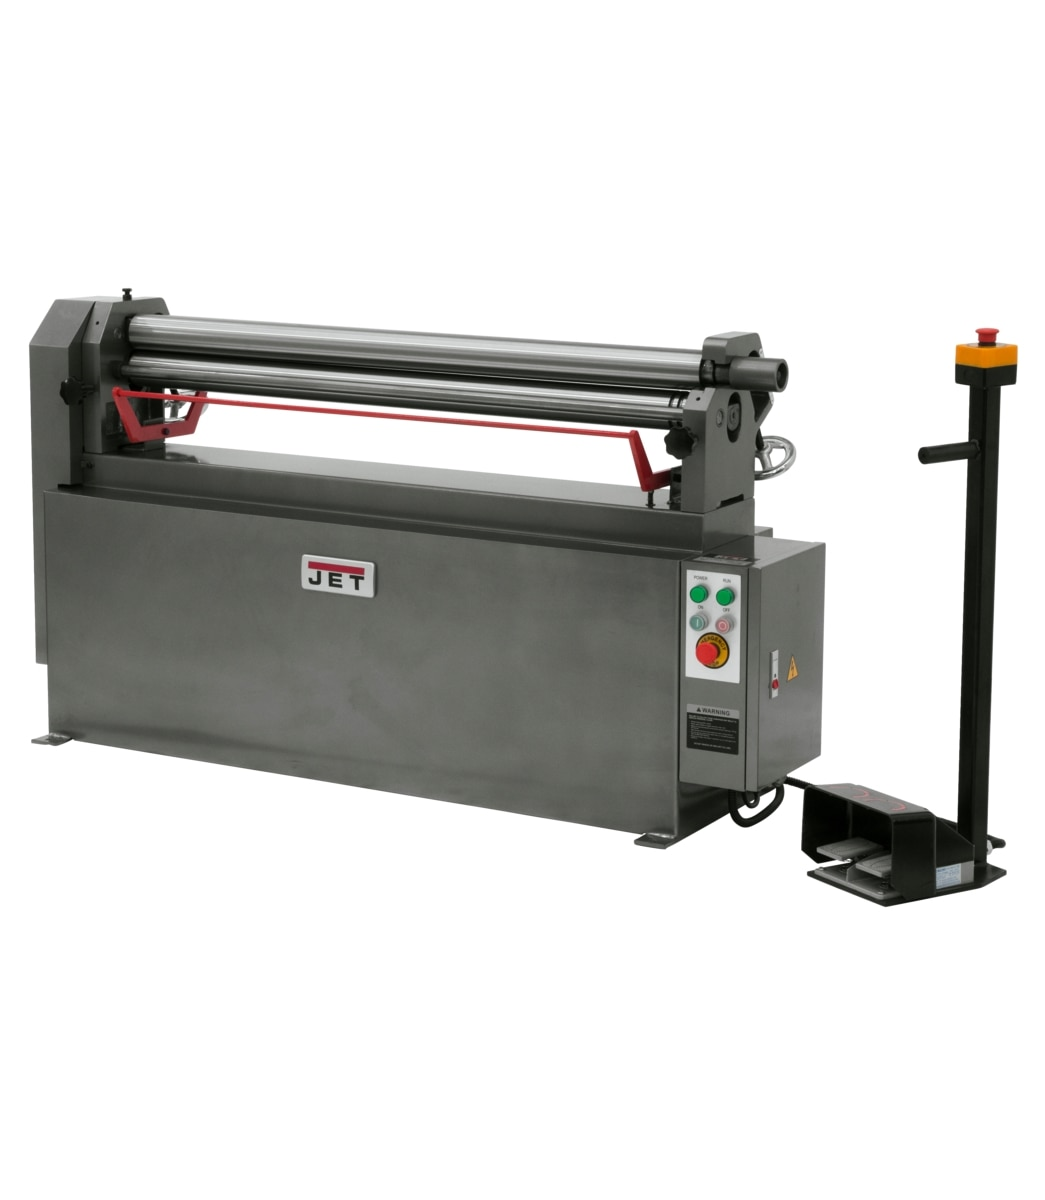 "ESR-1650-1T, 50"" x 16 Gauge Electric Slip Roll 1Ph"